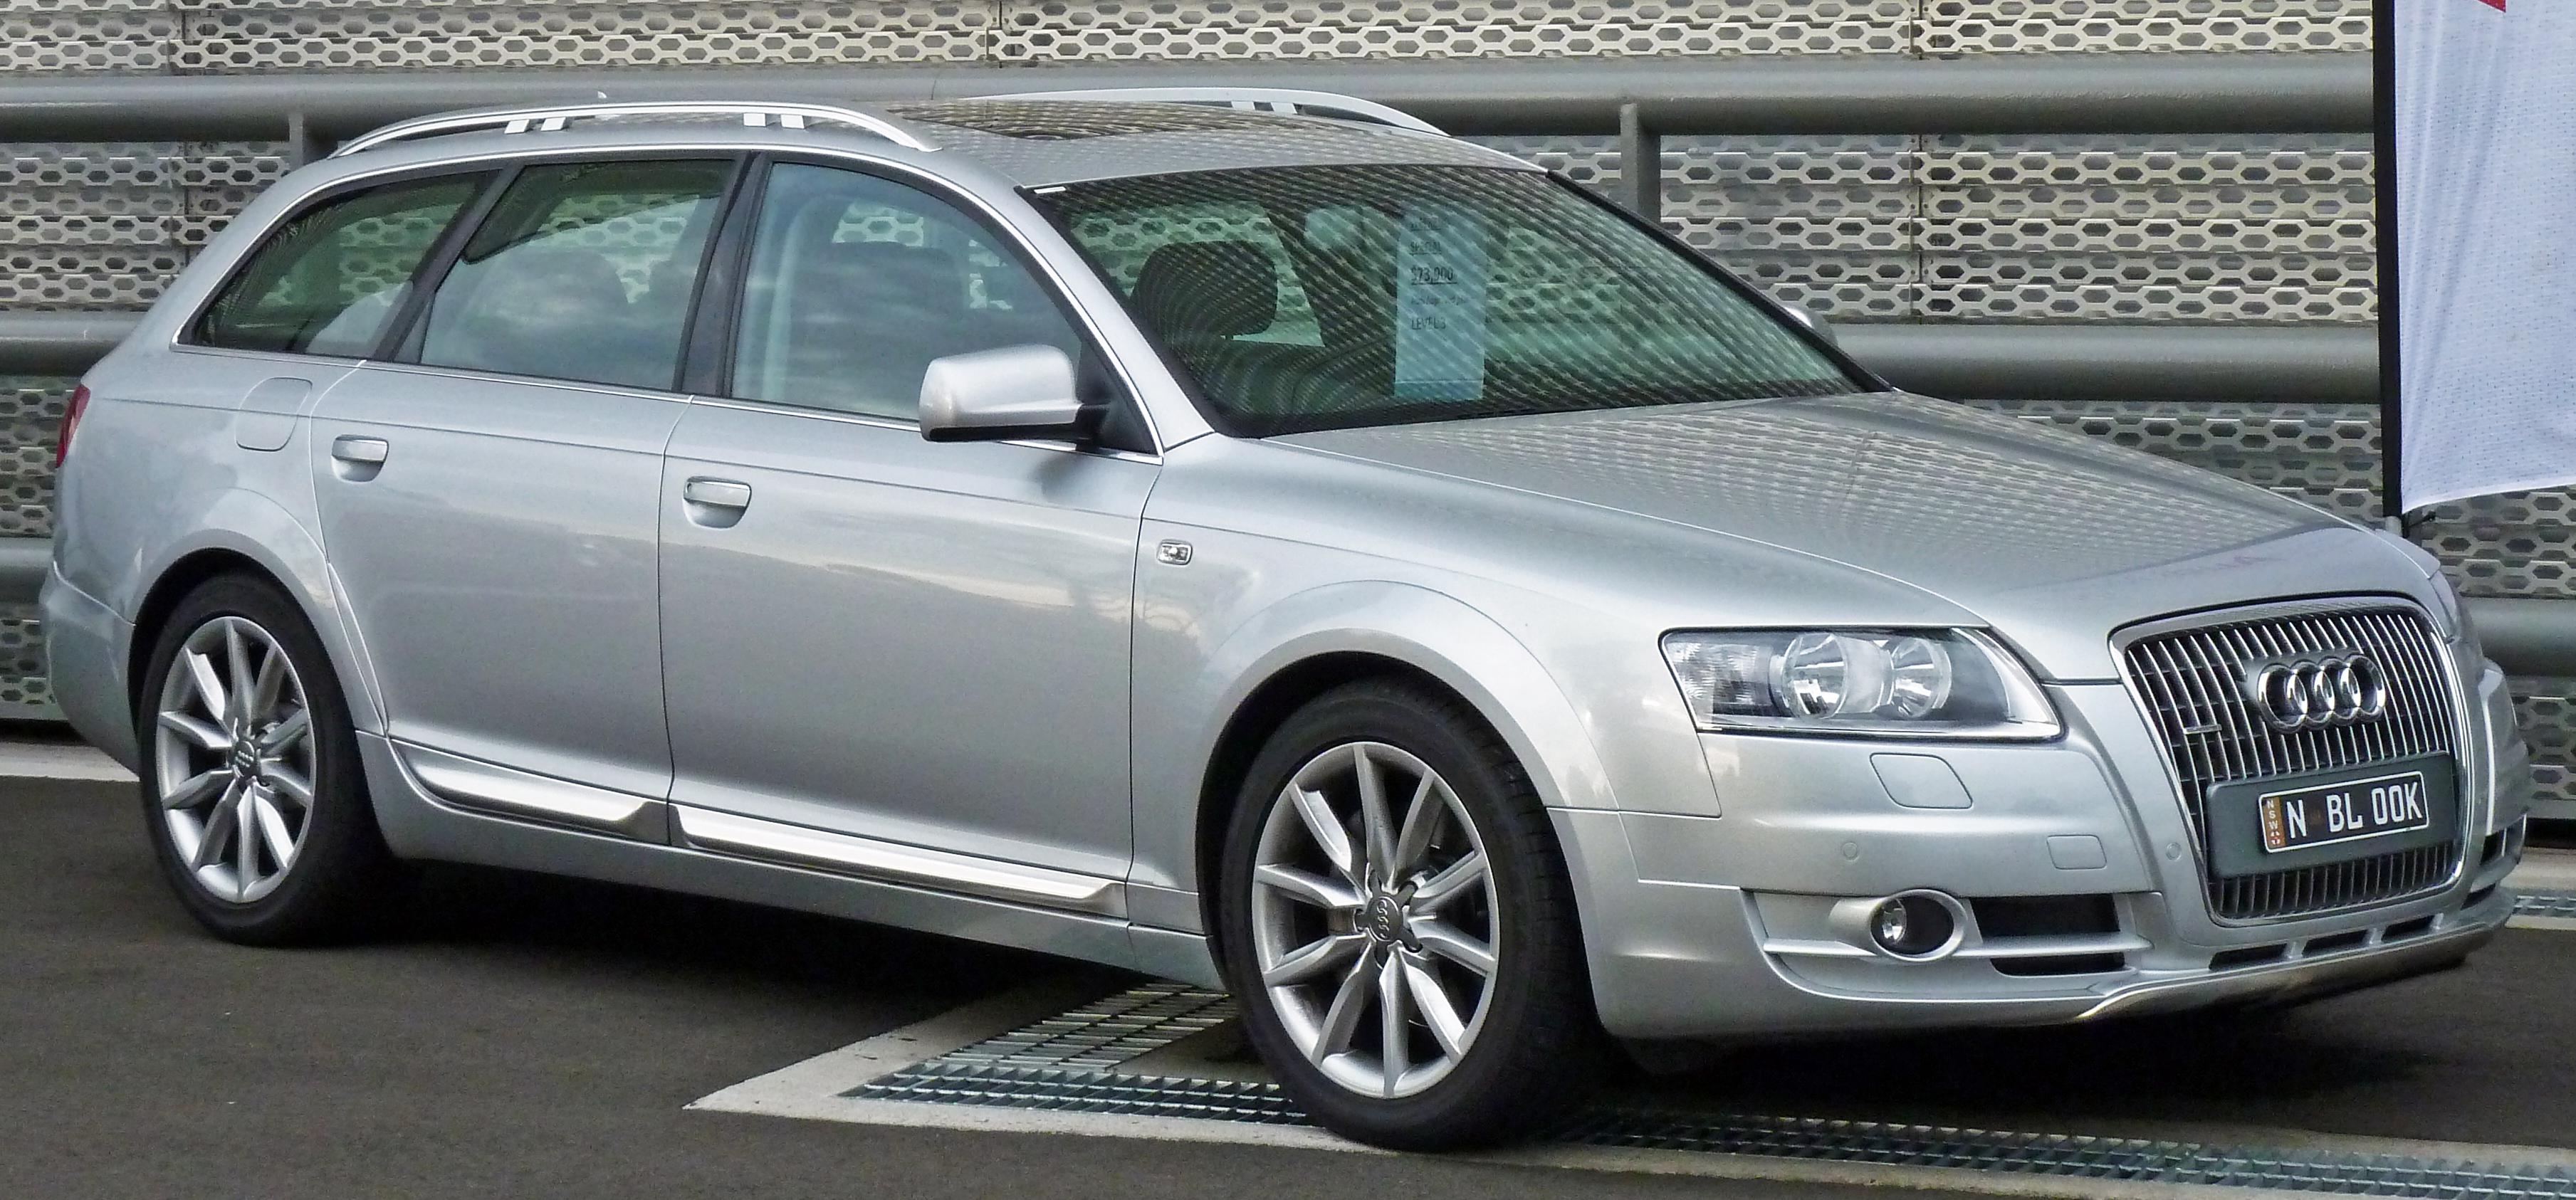 file 2007 audi a6 4f allroad quattro 3 0 tdi station wagon wikimedia commons. Black Bedroom Furniture Sets. Home Design Ideas